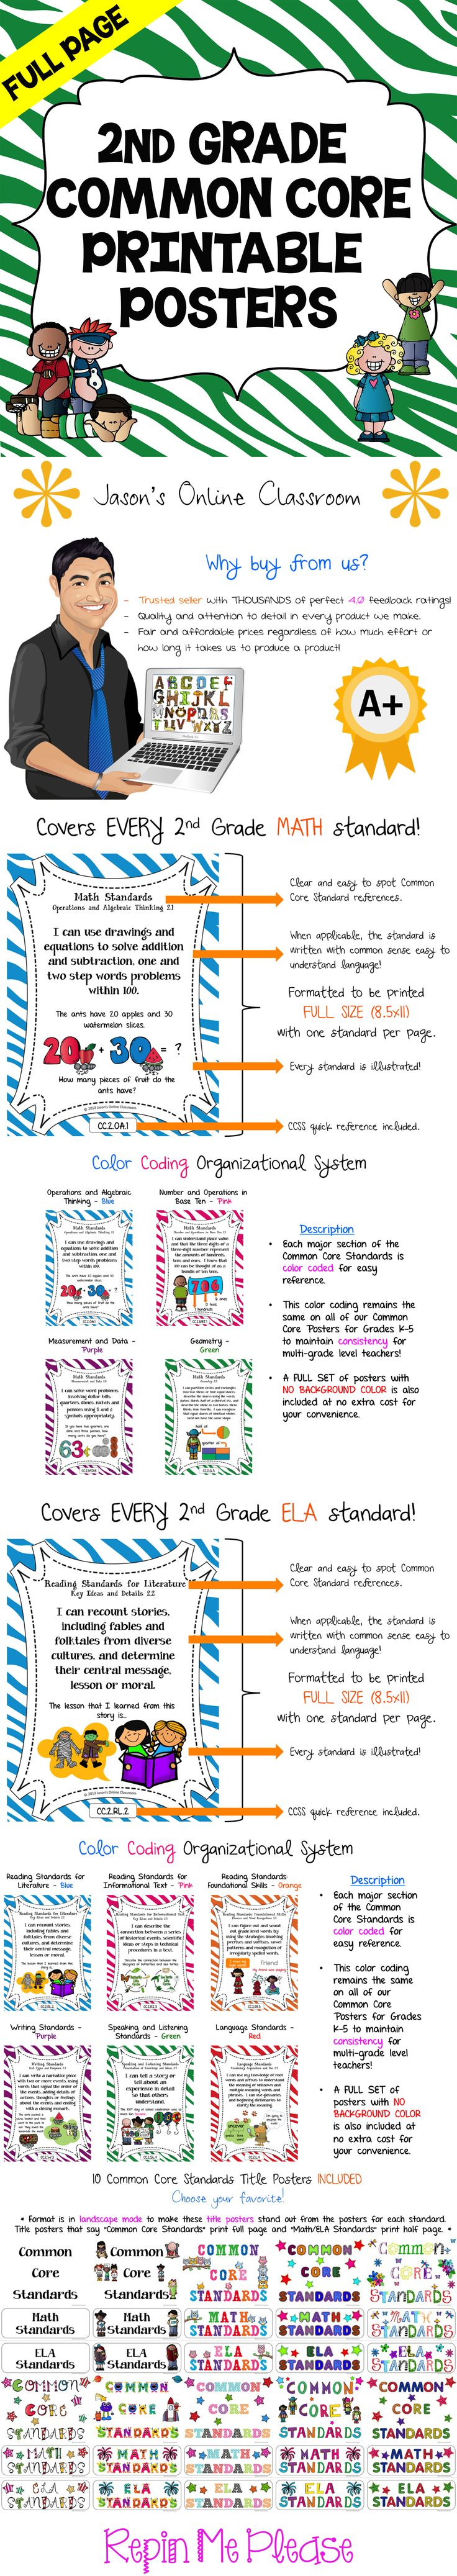 2nd GRADE COMMON CORE POSTERS - Save a ton of time by buying our FULL PAGE SIZE pre-made Common Core color coded posters with detailed visual examples. We also offer half-sized posters which can be found at our TpT store. $$